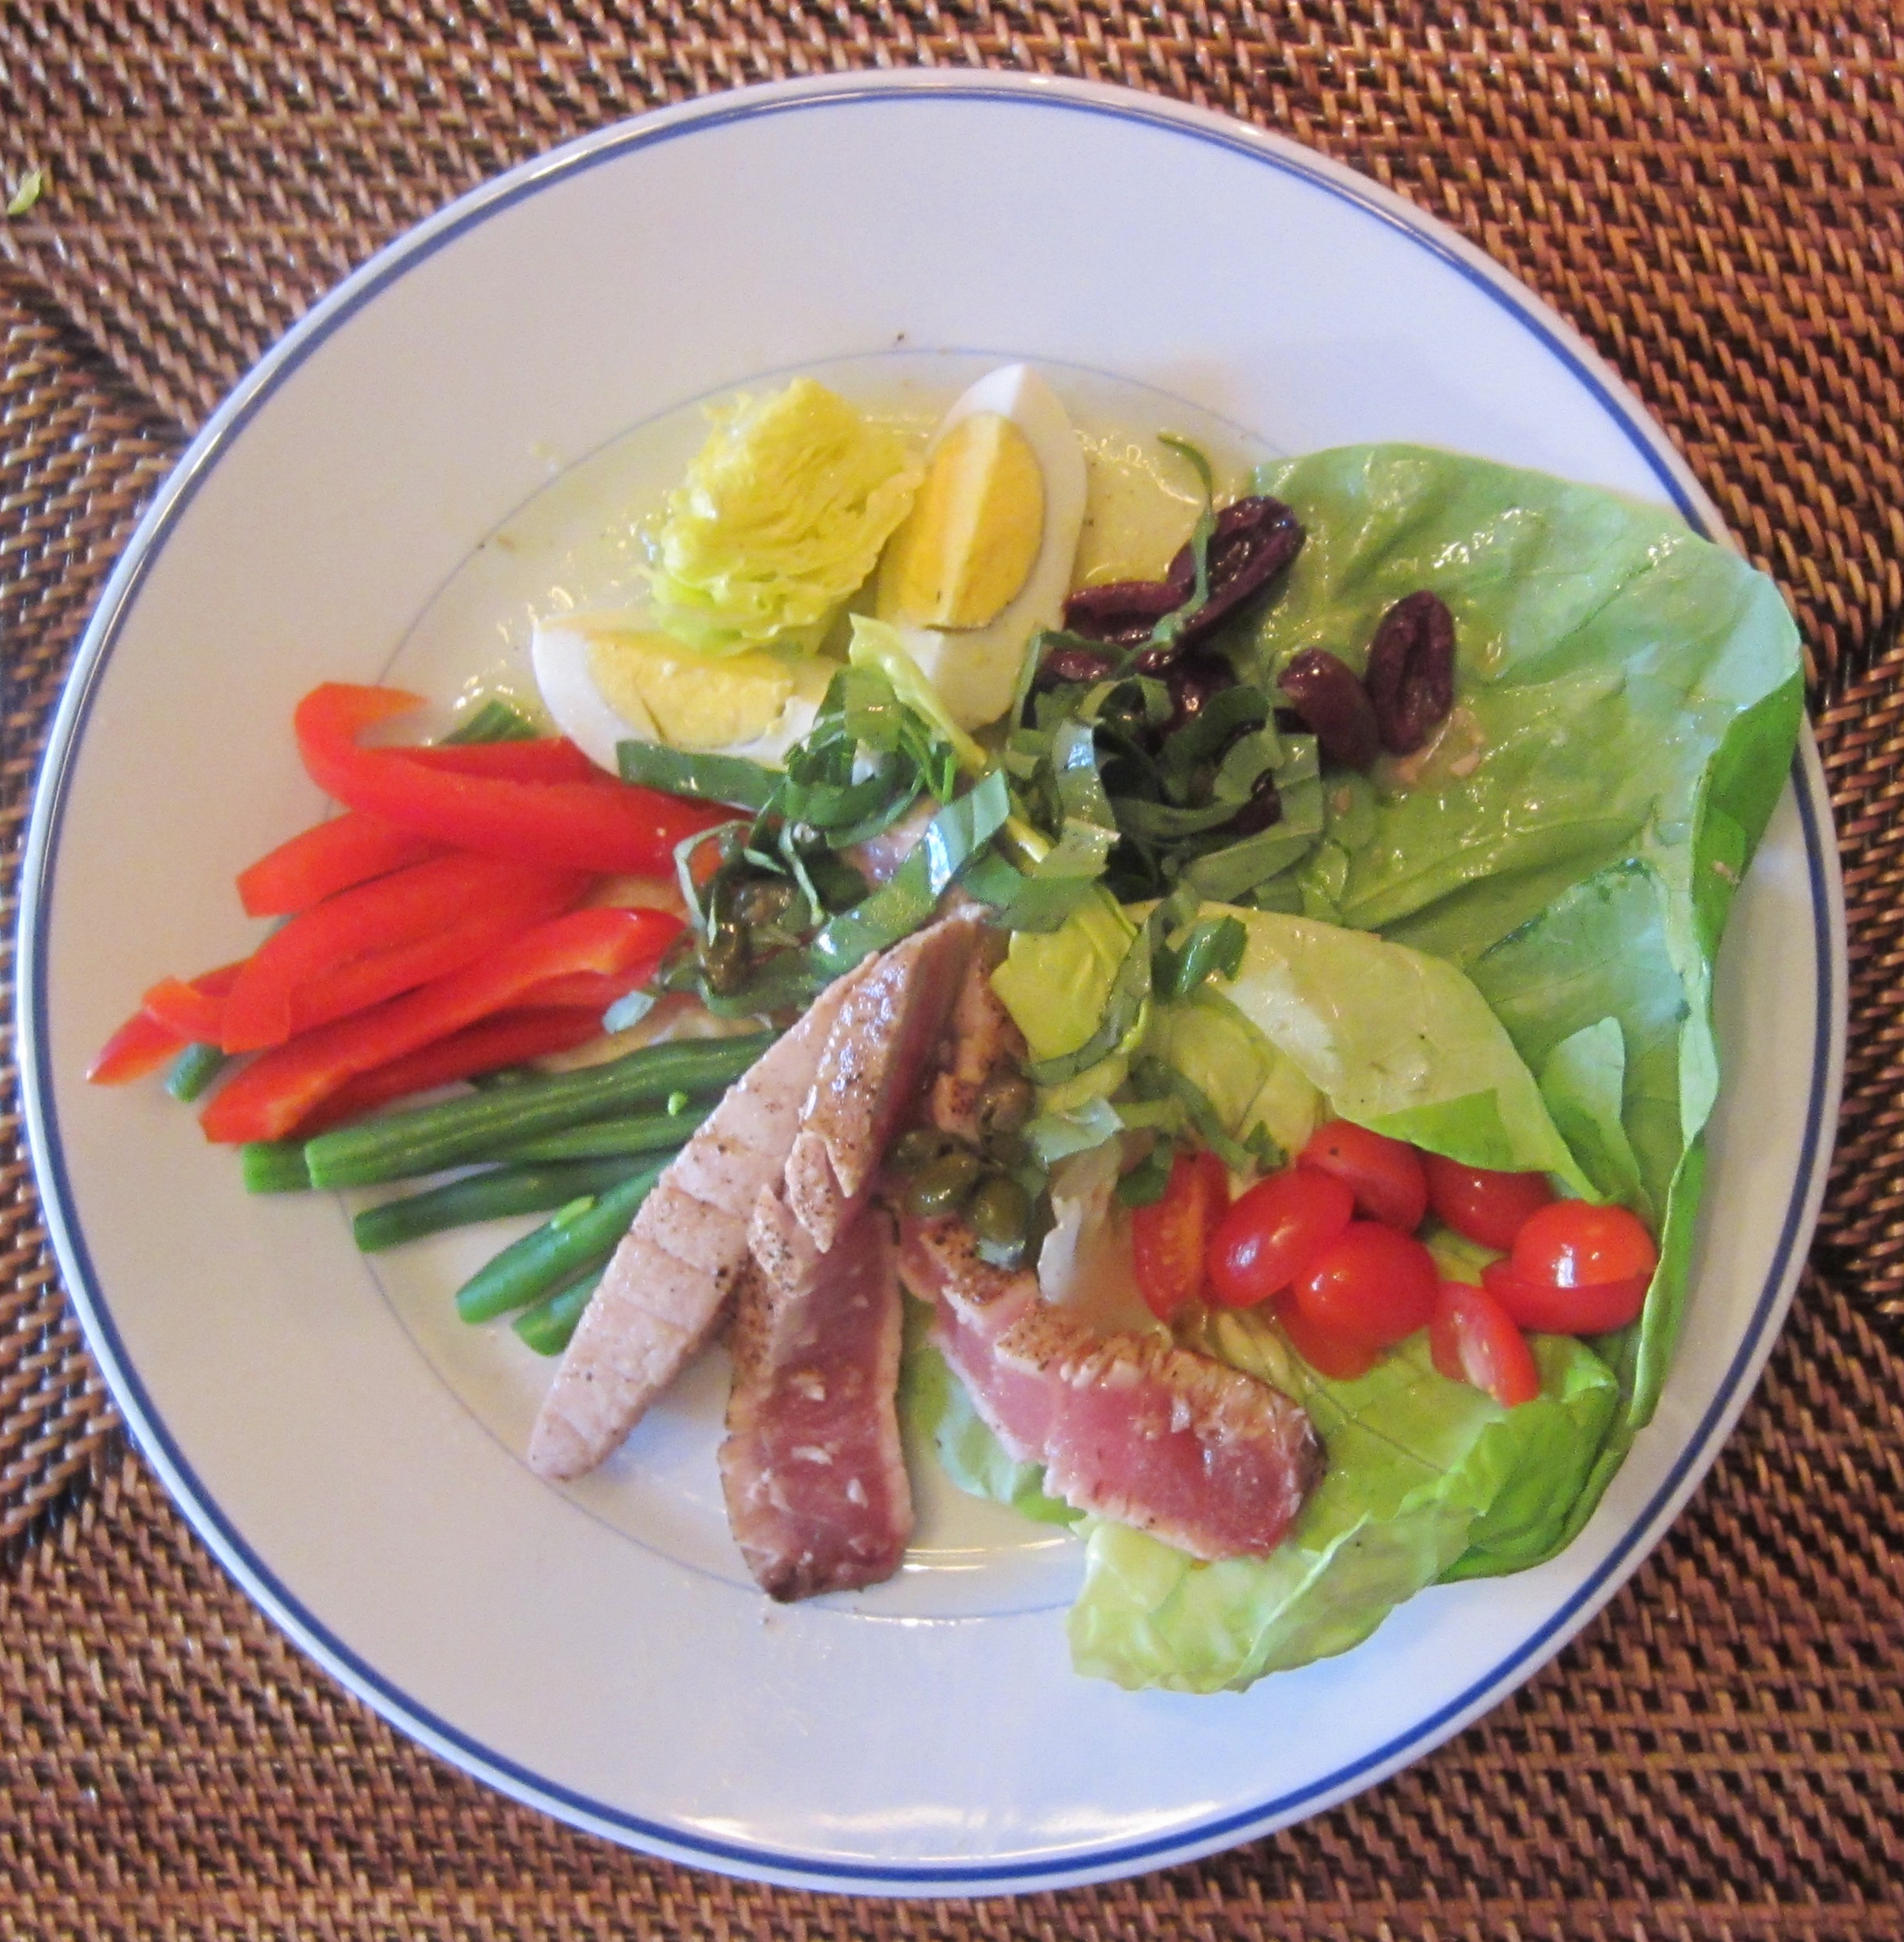 Deconstructed Tuna Nicoise Salad